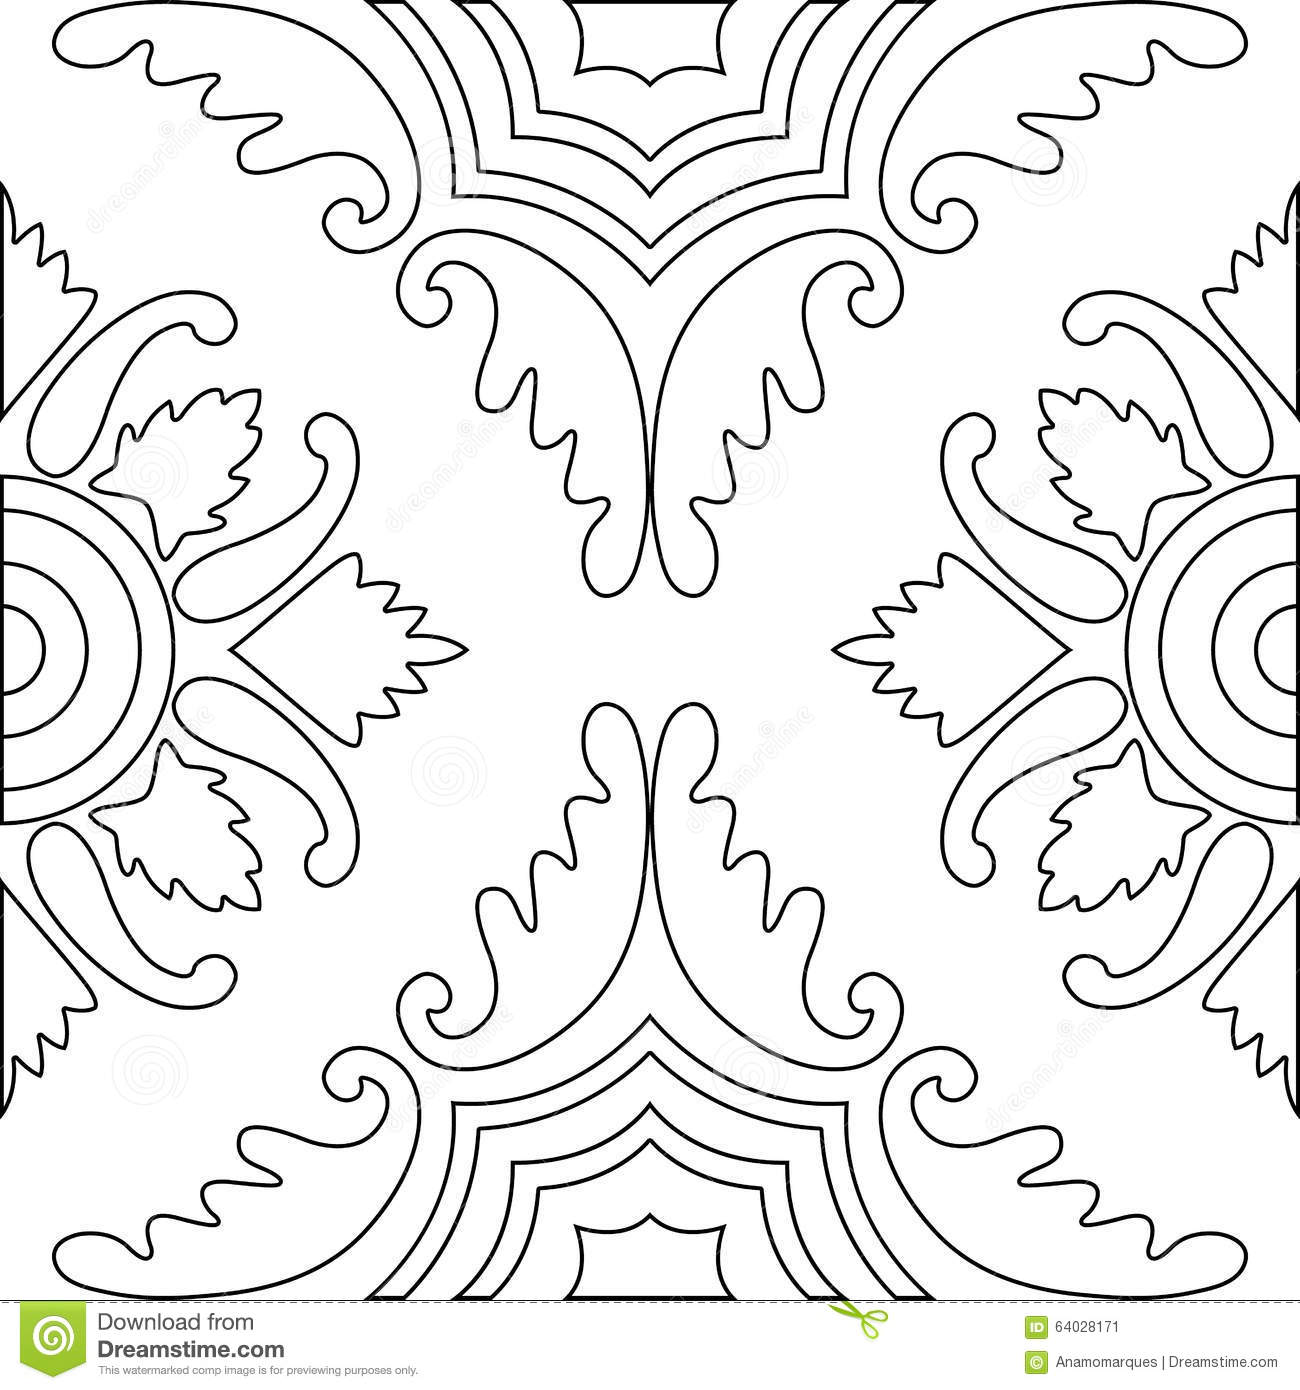 Unique Coloring Book Square Page For Adults - Seamless Pattern Stock ...